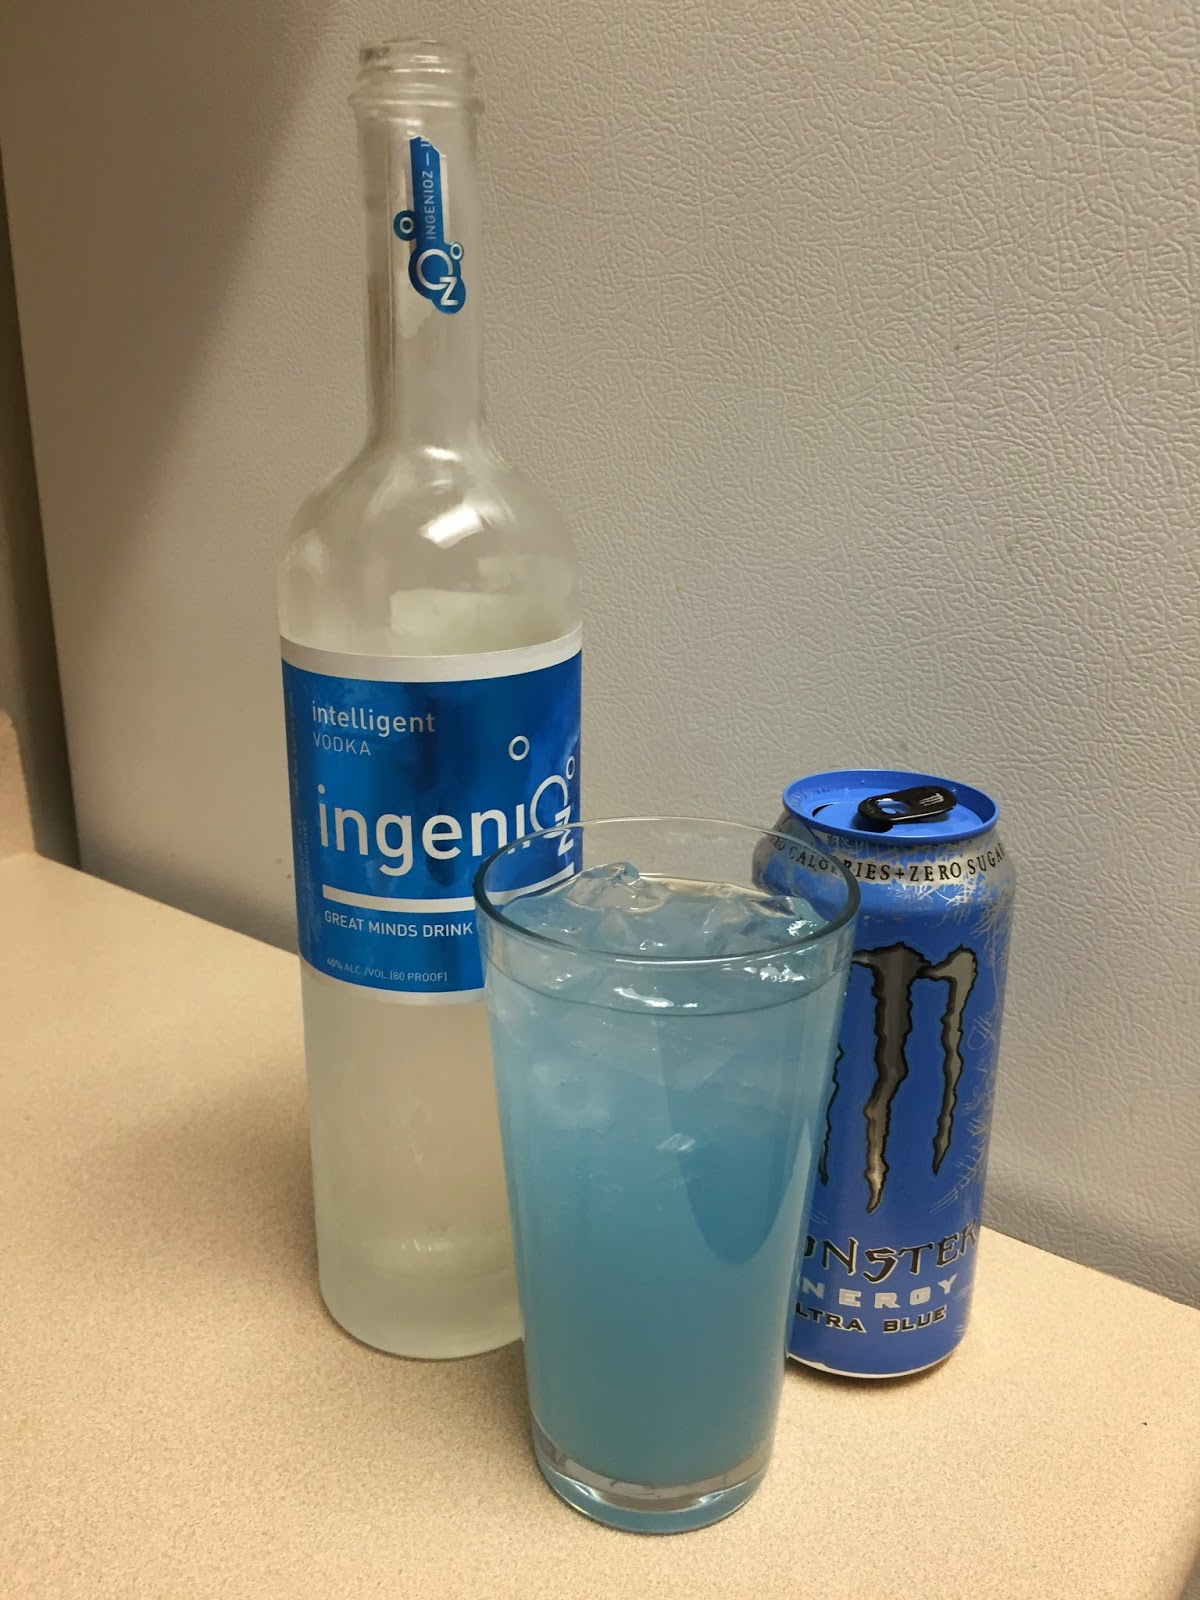 Iowa-made ingeniOz vodka supposed to soften the effects of a hangover